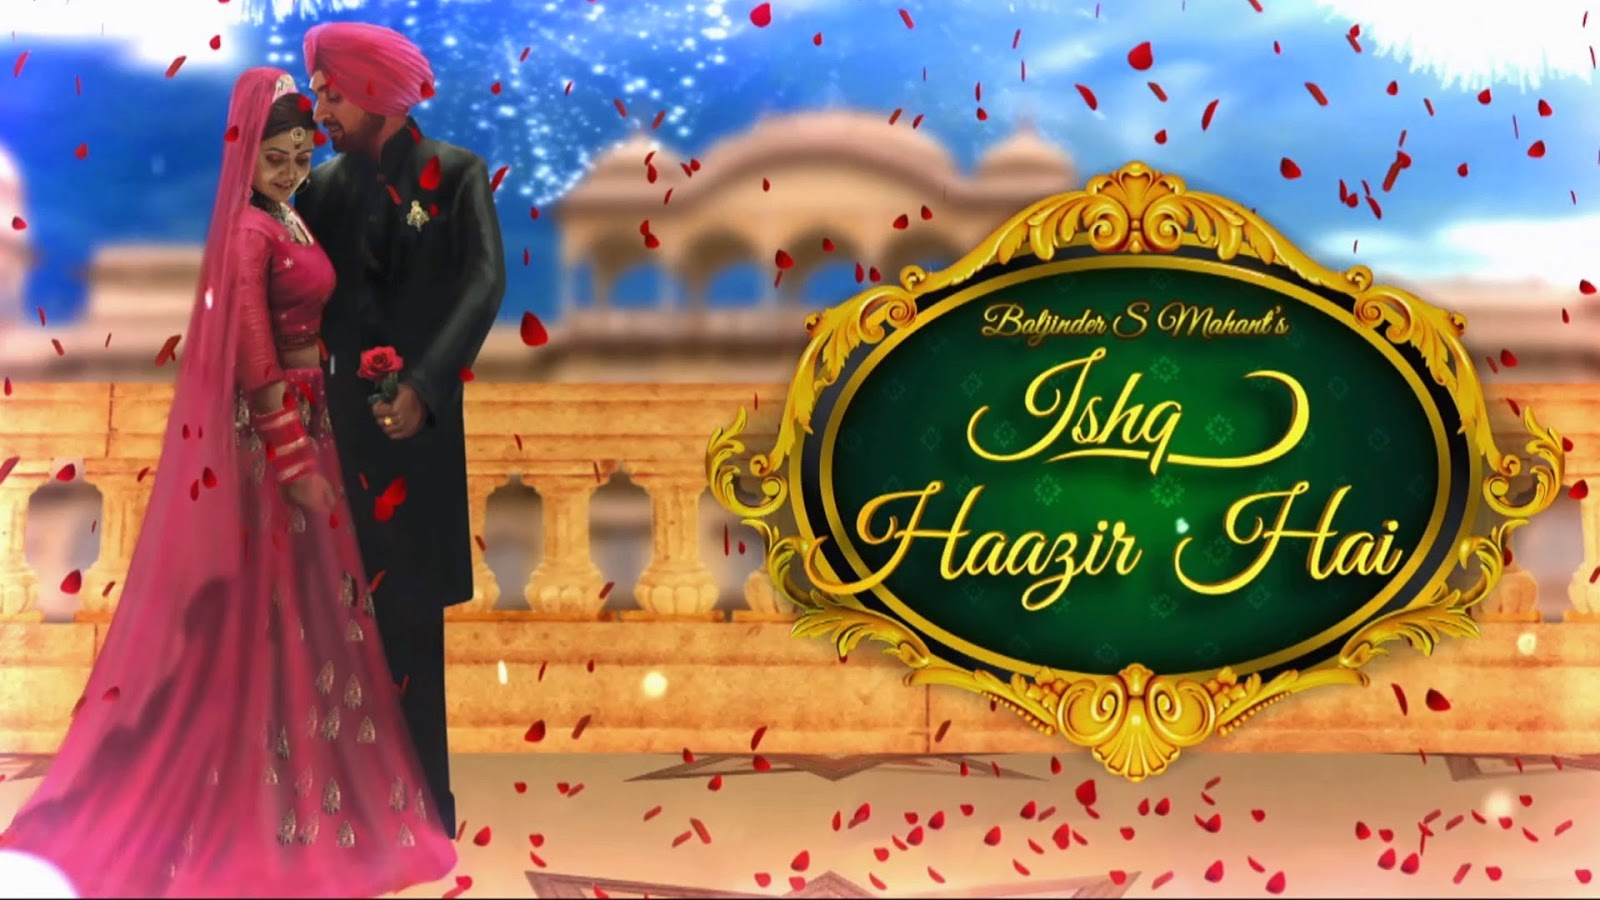 tere kanna de vich gallan kra pyar diya lyrics & hd video diljit dosanjh mp3